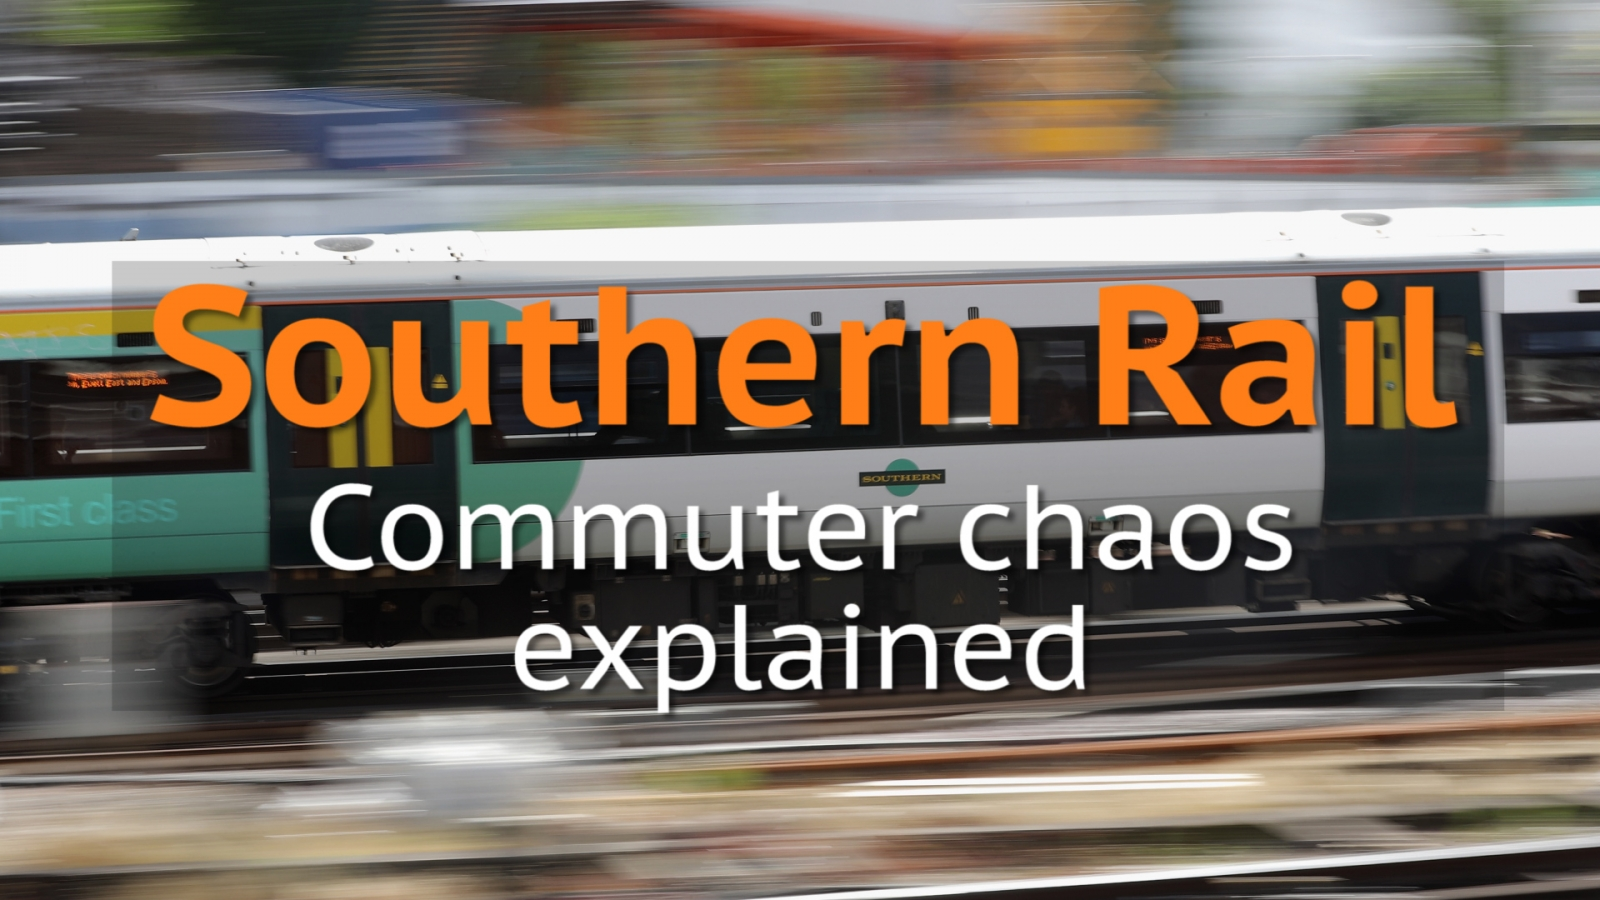 Southern Rail: South East commuter chaos explained